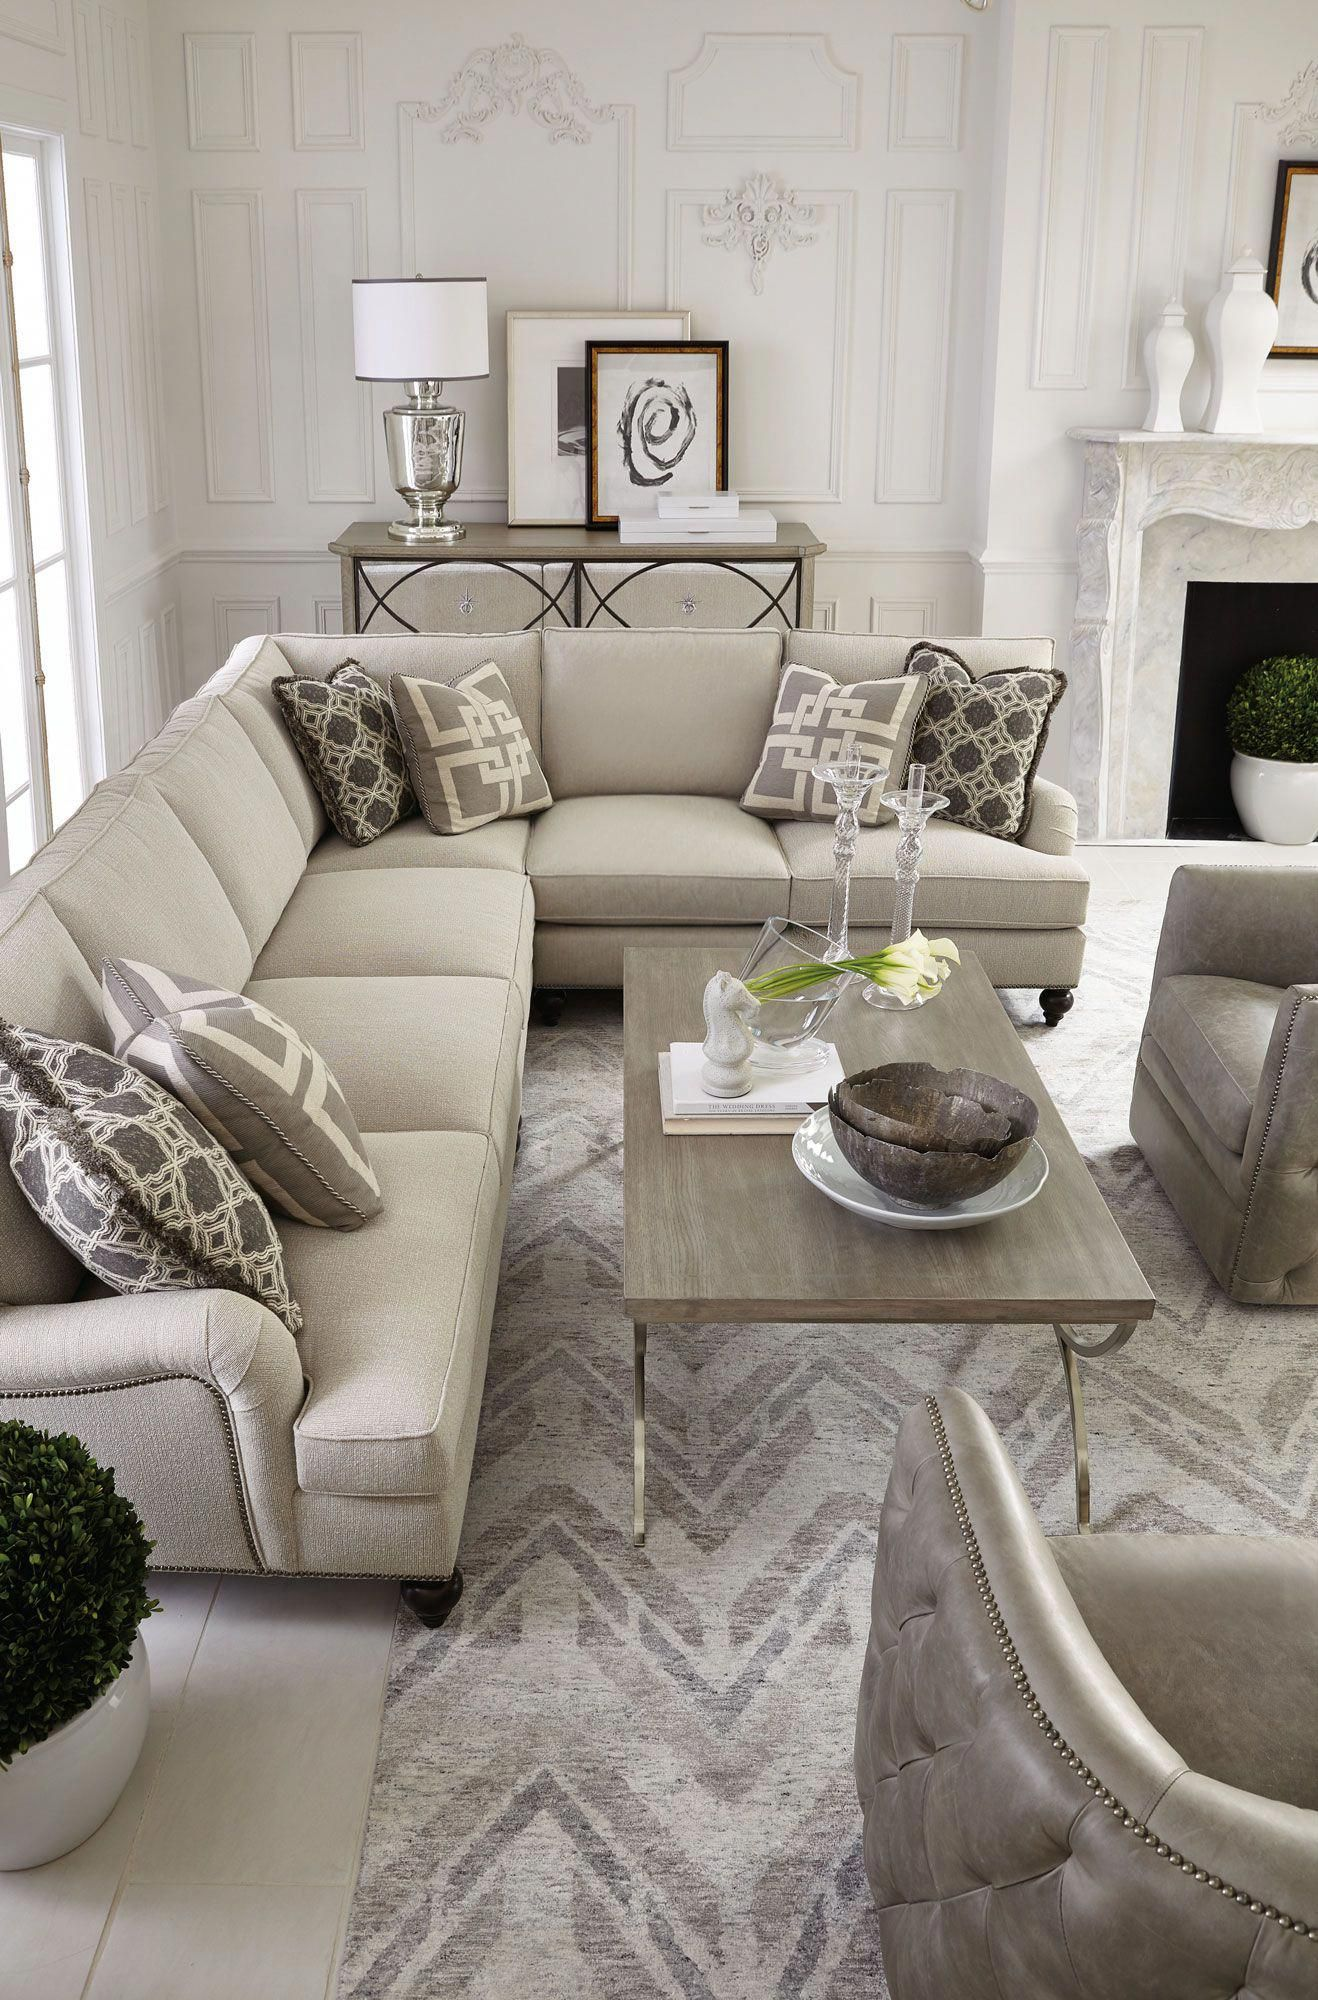 Marquesa palazzo signature seating living room bernhardt livingroomdecorations also cozy small decor ideas for your apartment in rh pinterest